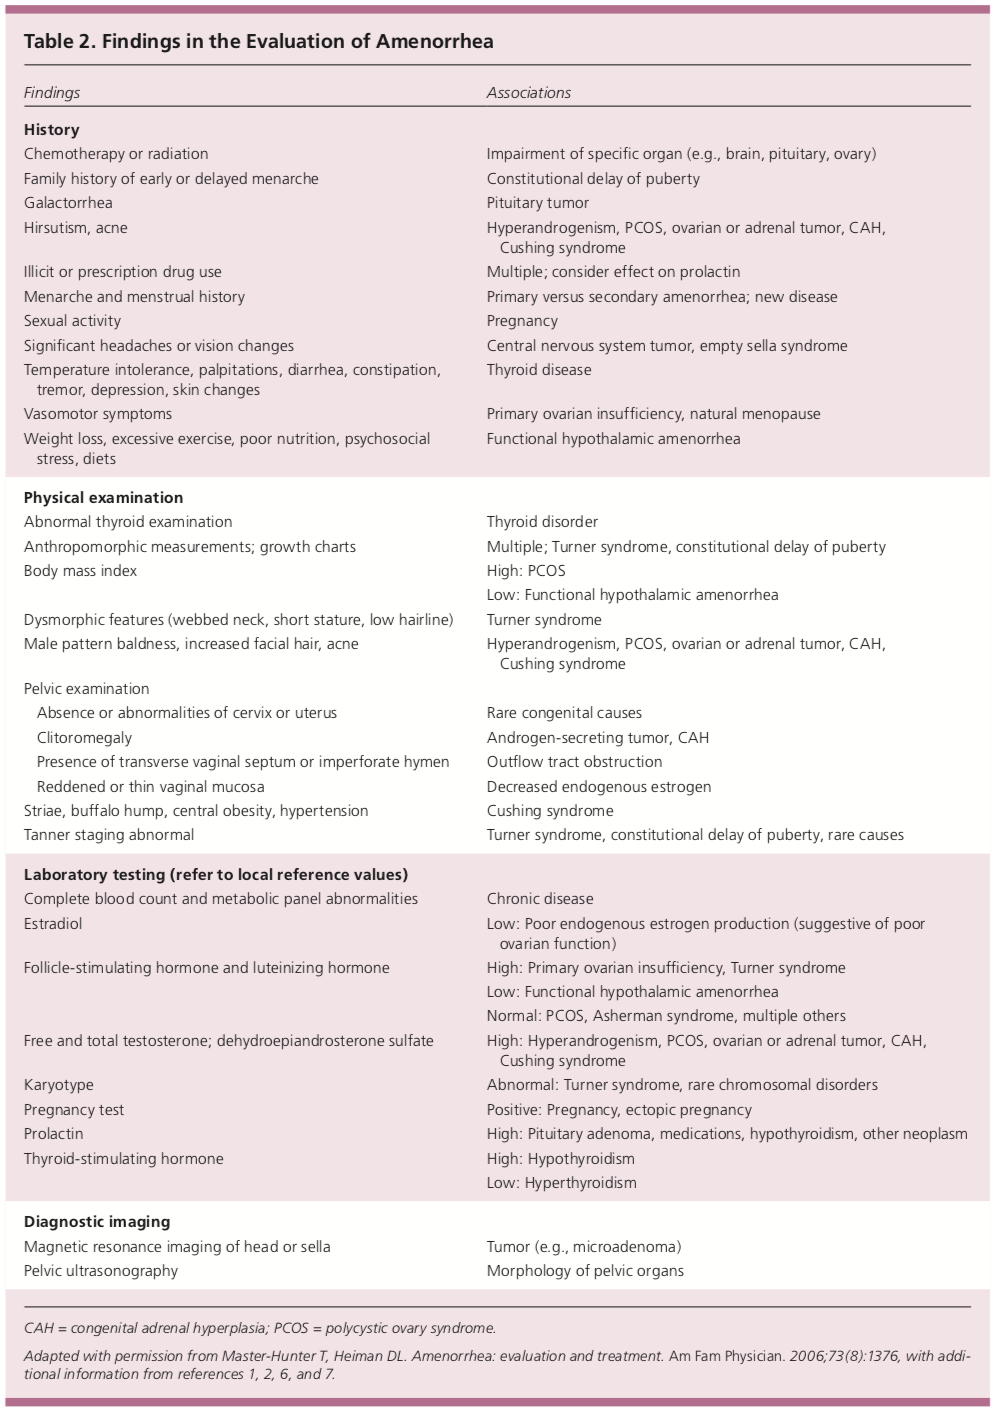 Findings in the Evaluation of Amenorrhea